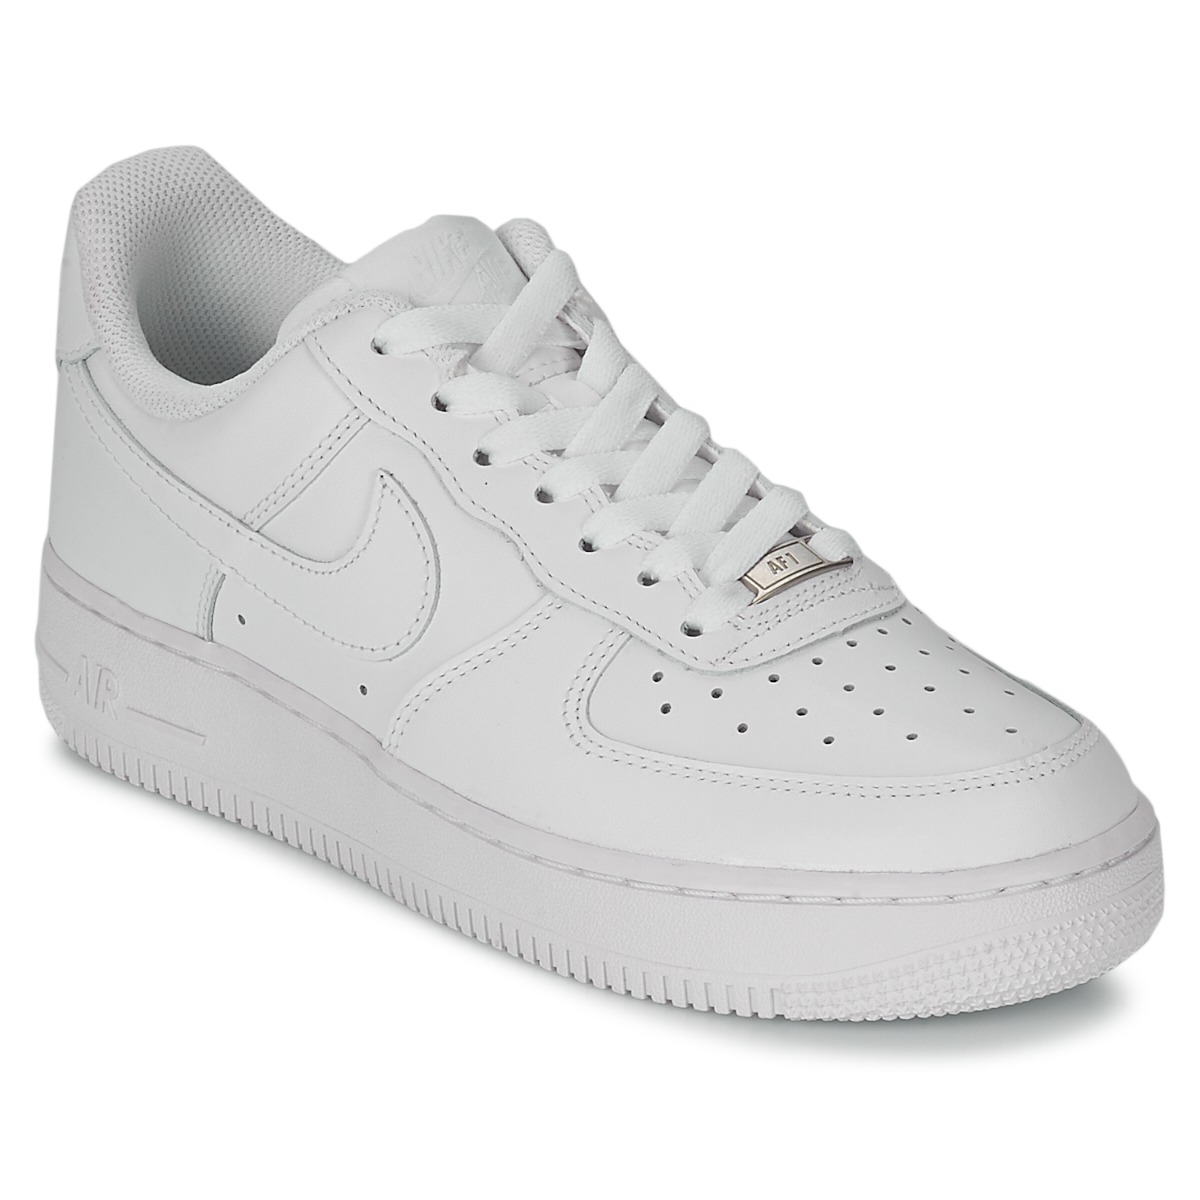 nike air force 1 07 leather w blanc livraison gratuite avec chaussures baskets. Black Bedroom Furniture Sets. Home Design Ideas